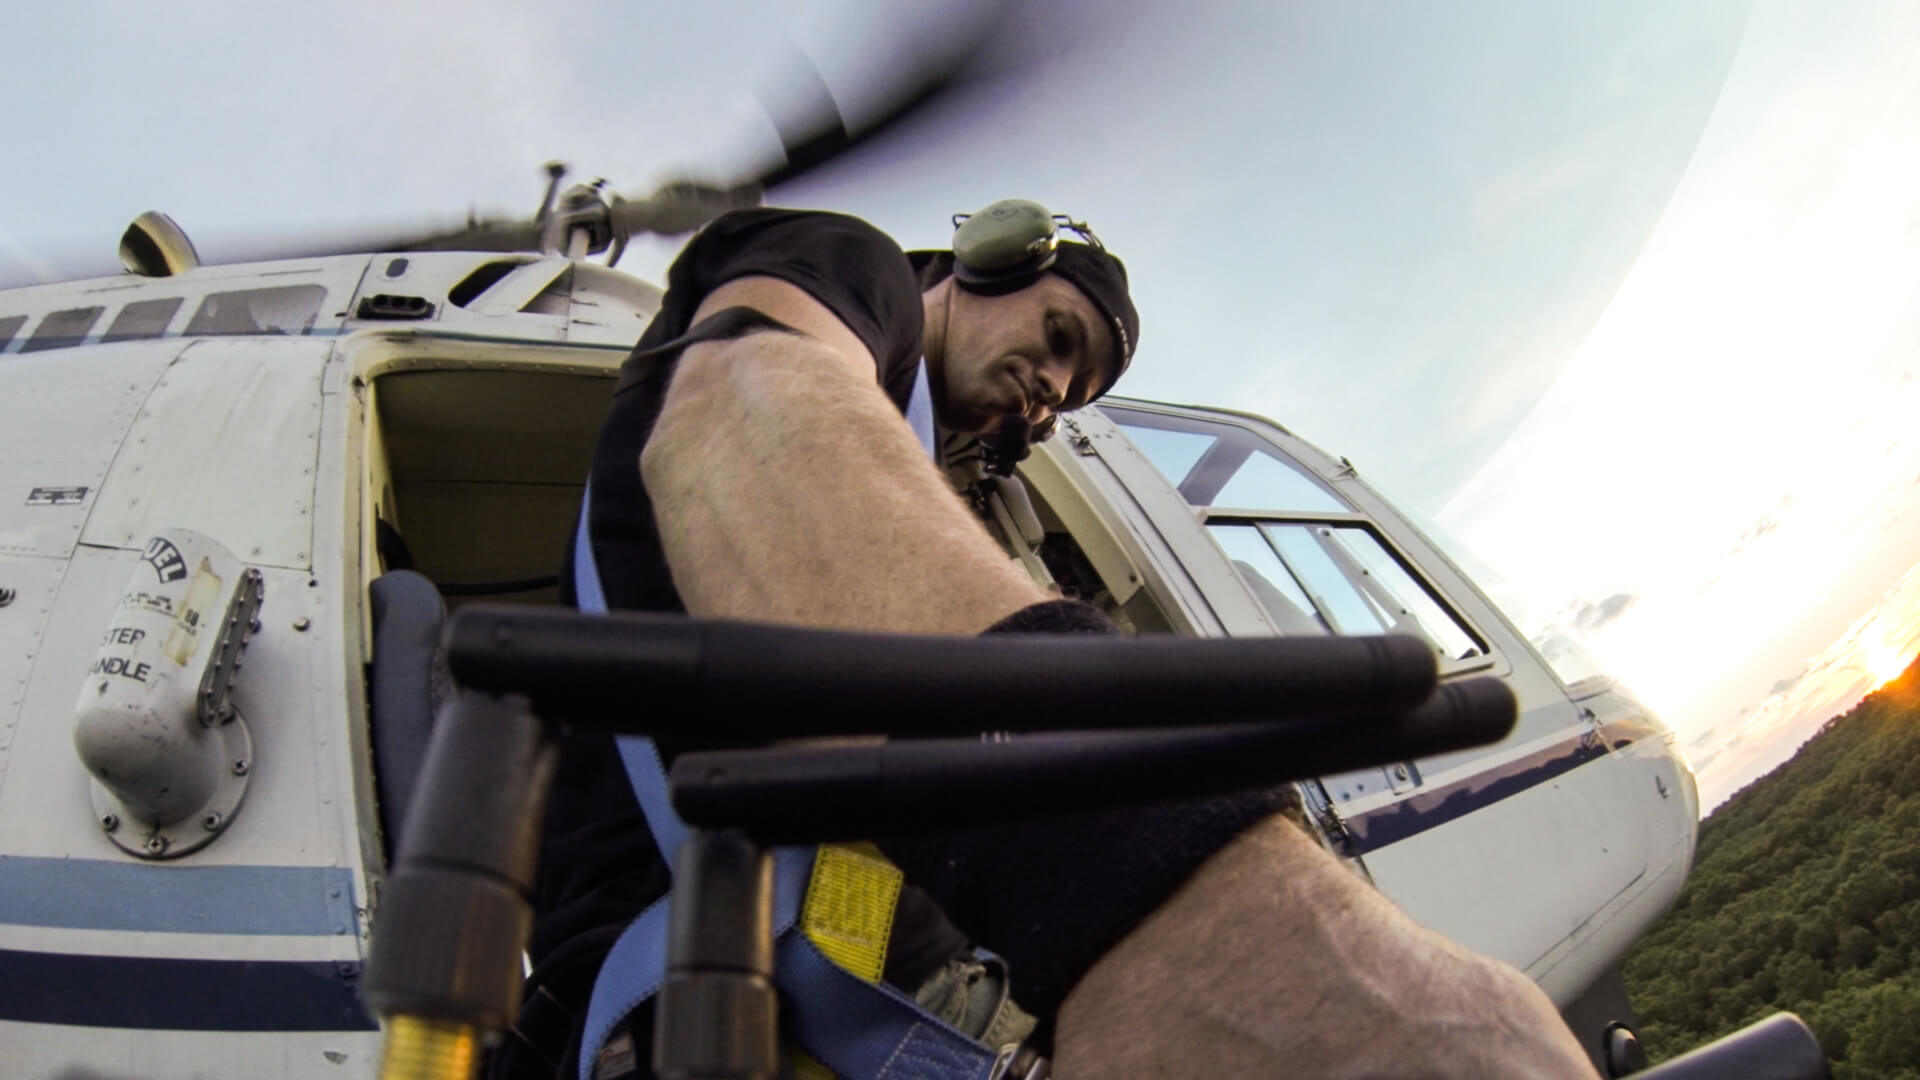 MoVI Operator Sam Nuttmann - Gus Van Sant - Sea Of Trees - operating from helicopter